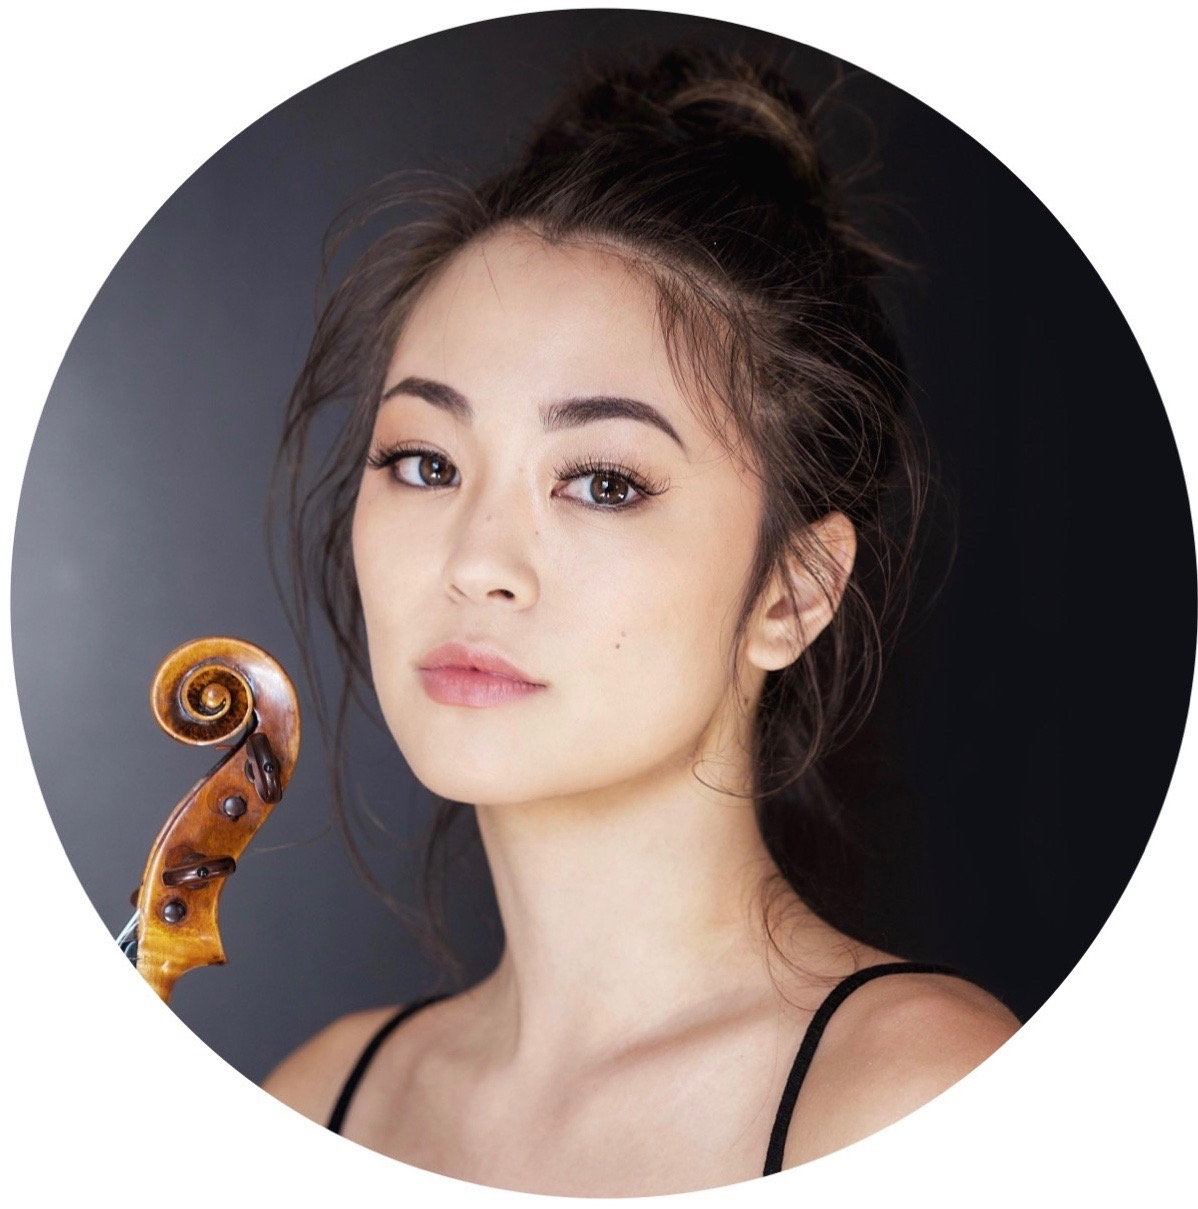 Simone Porter - Violinist Simone Porter has been recognized as an emerging artist of impassioned energy, interpretive integrity, and vibrant communication. After performing last season with Gustavo Dudamel and the Los Angeles Philharmonic, the LA Times declared Simone